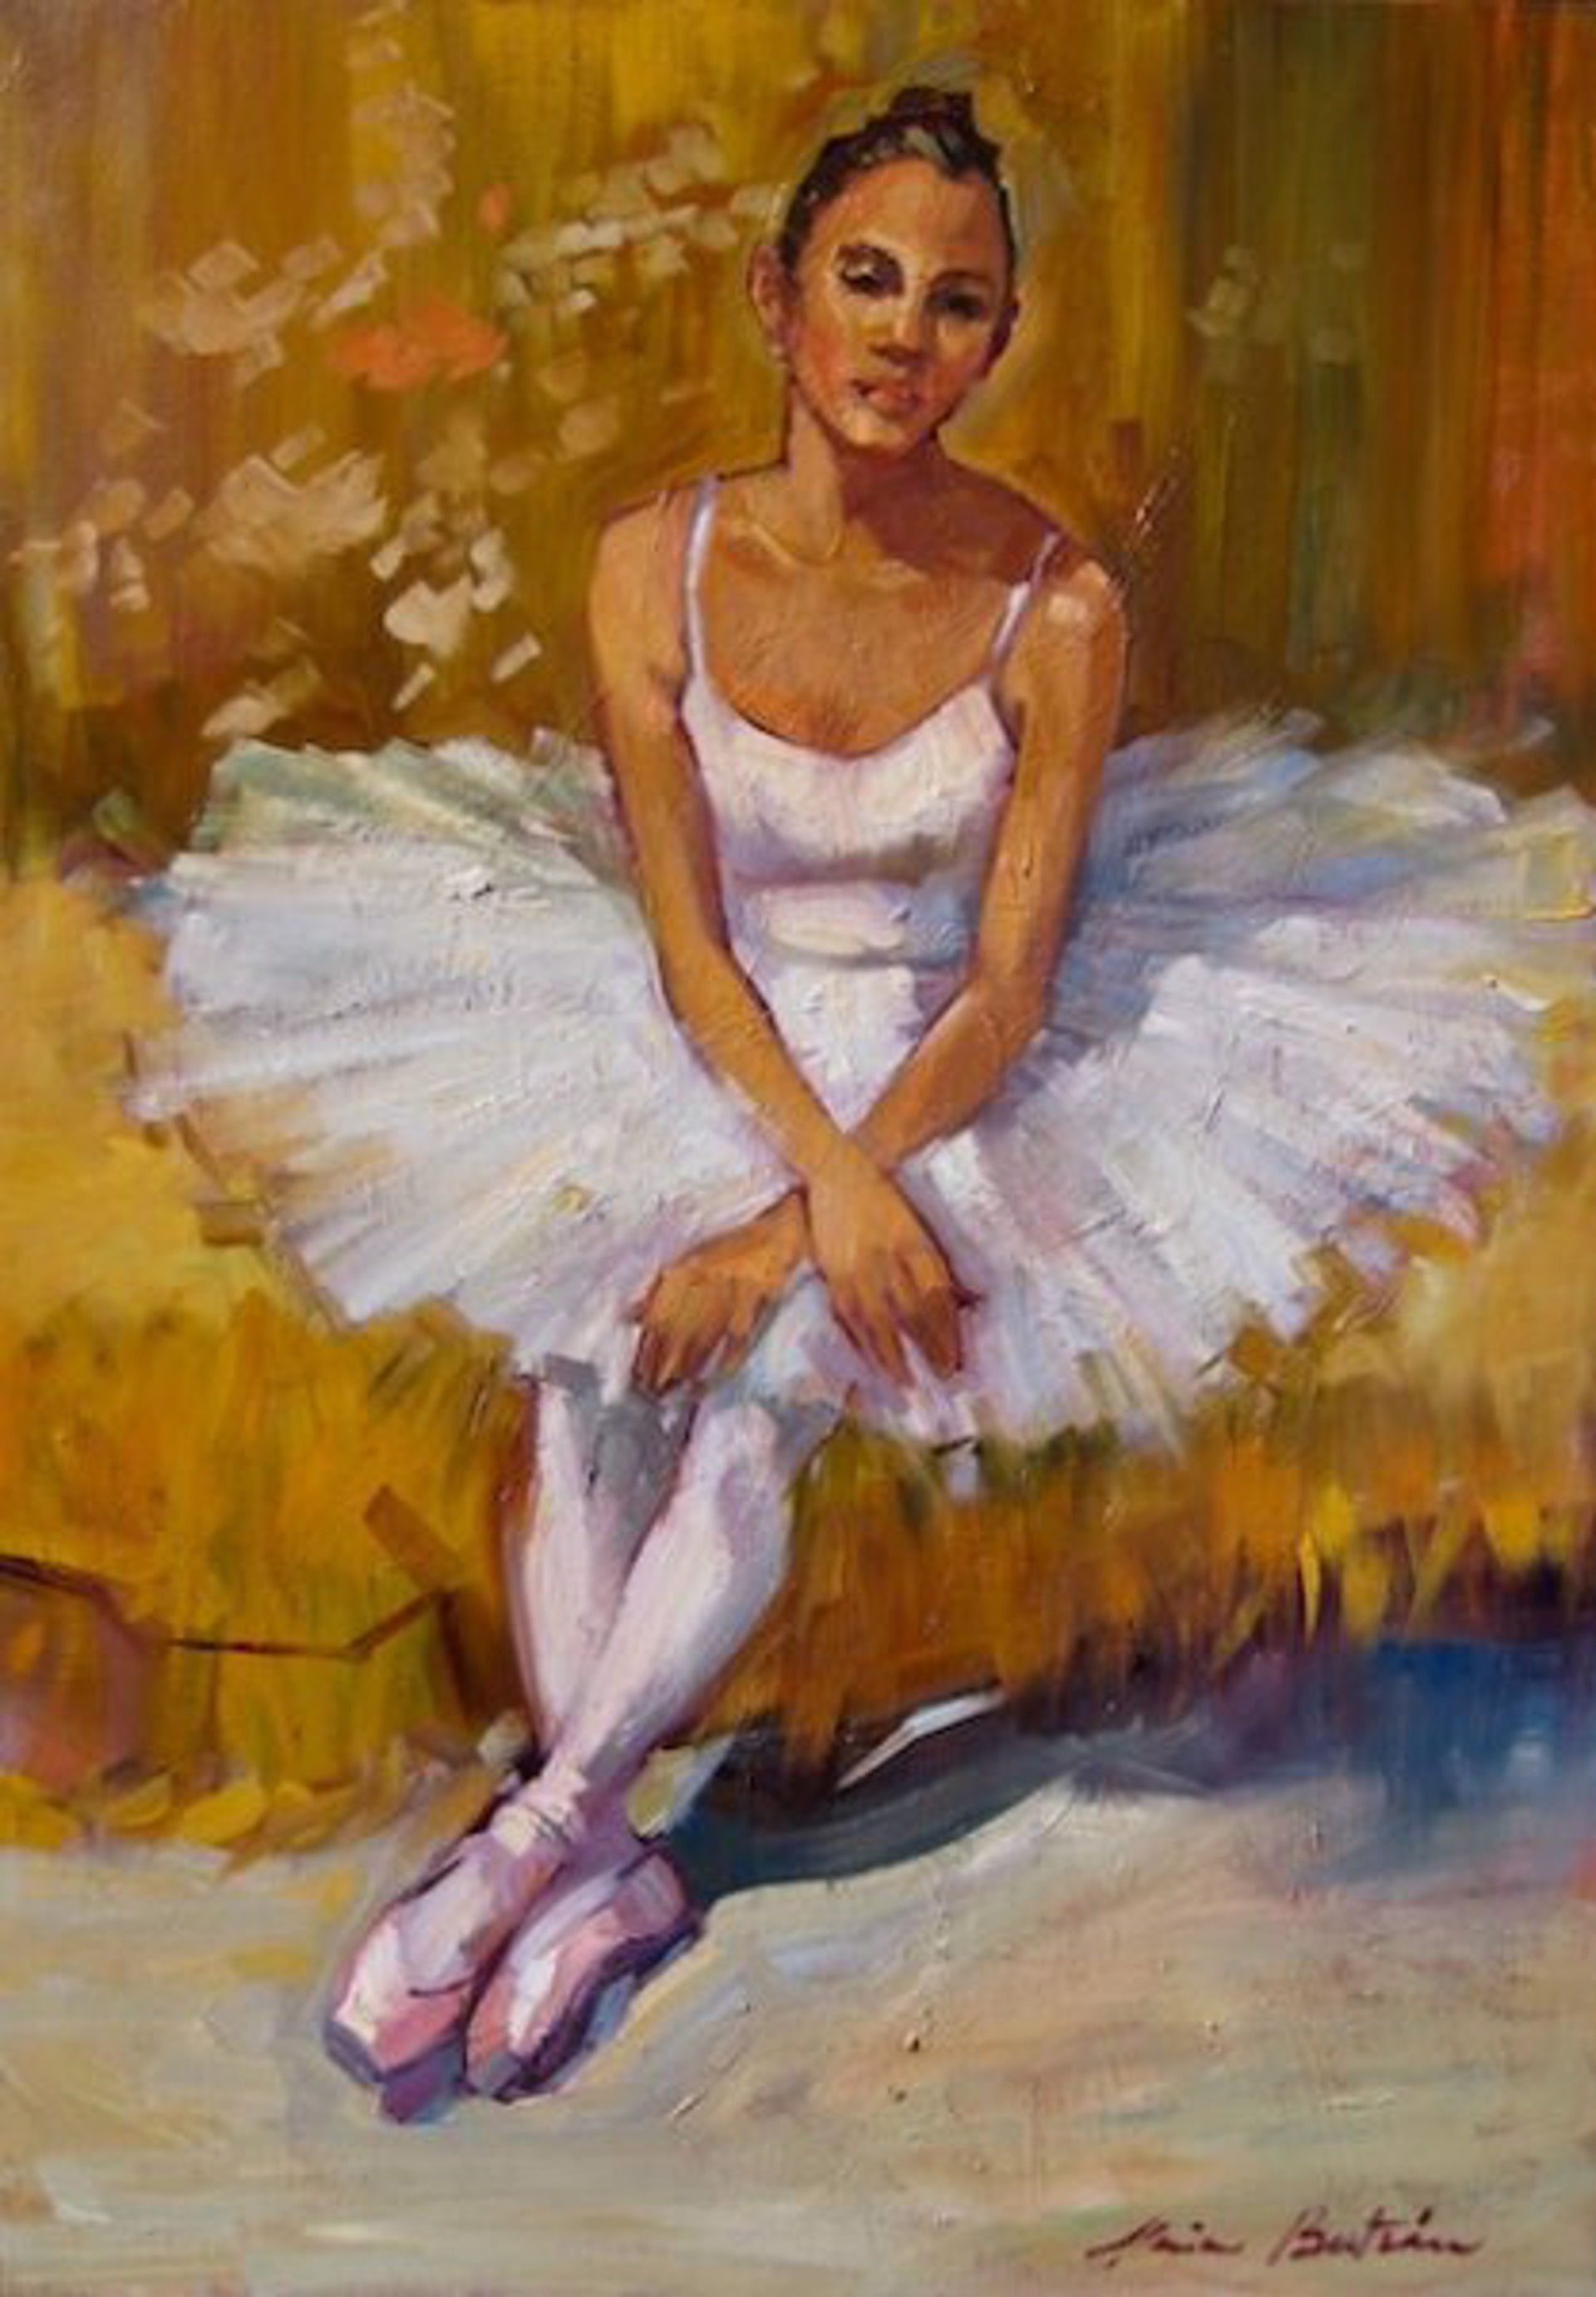 Maria Bertran: Ballerina At Rest by Maria Bertrán